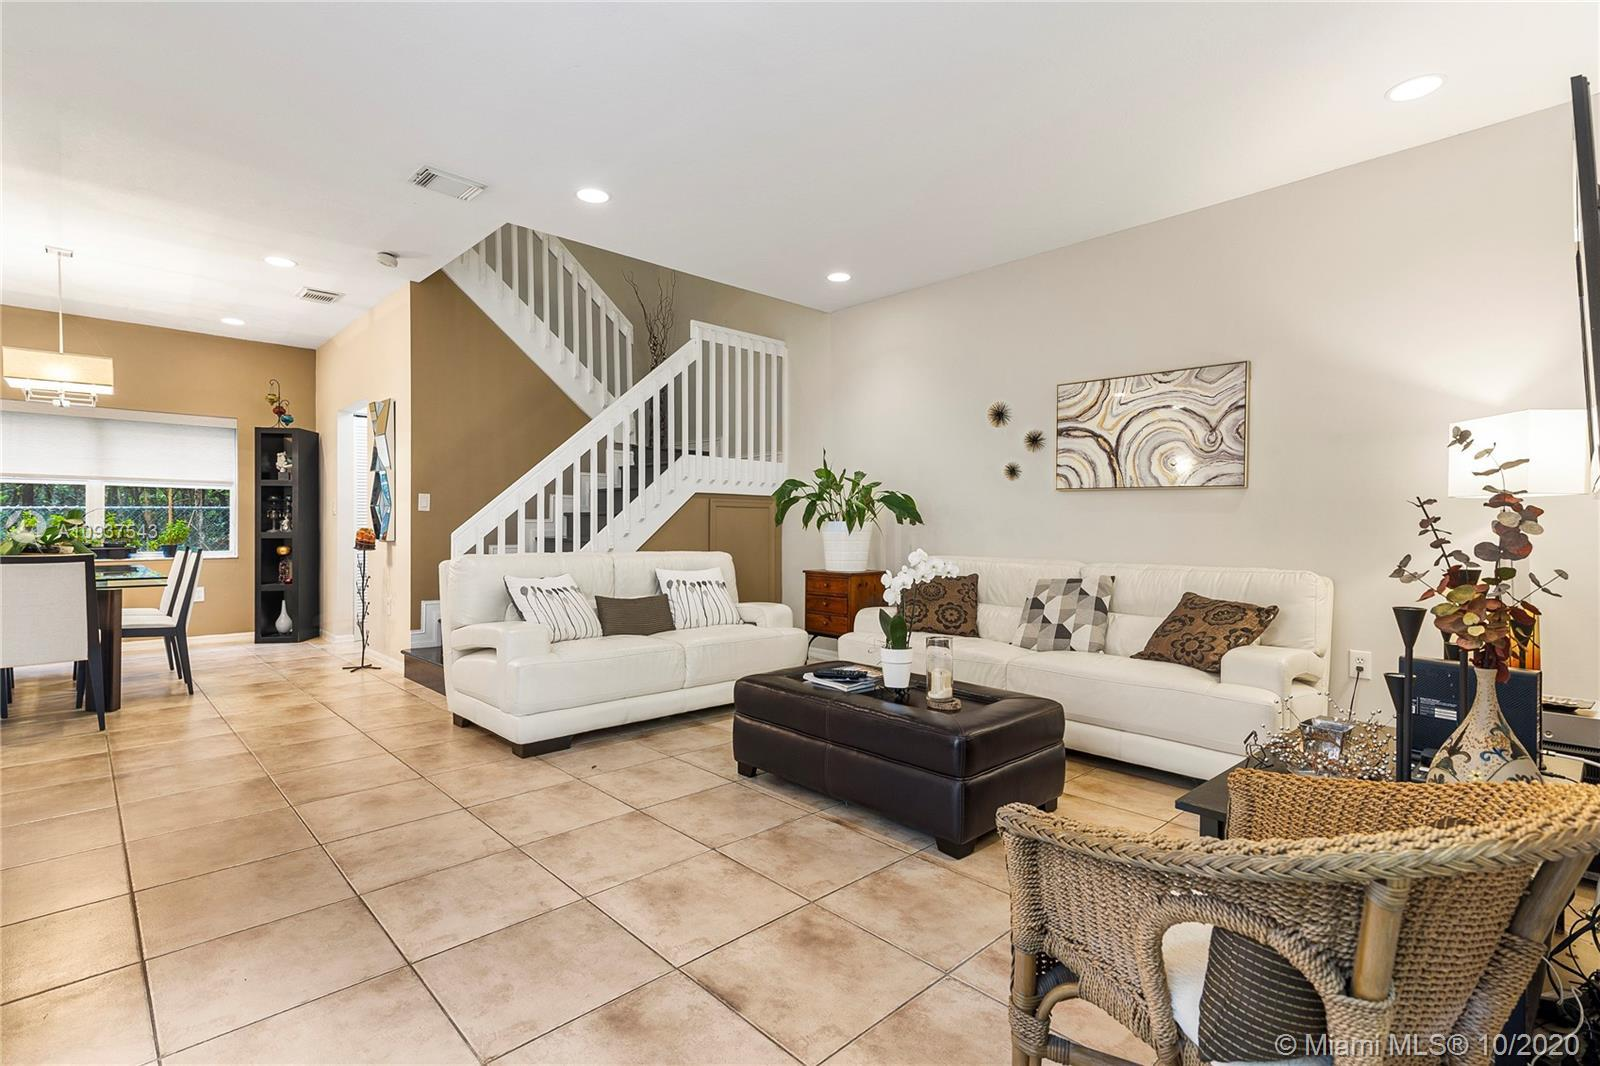 LOCATION! One of the few Townhome units that faces the lake and backs to the preserve, allowing wind